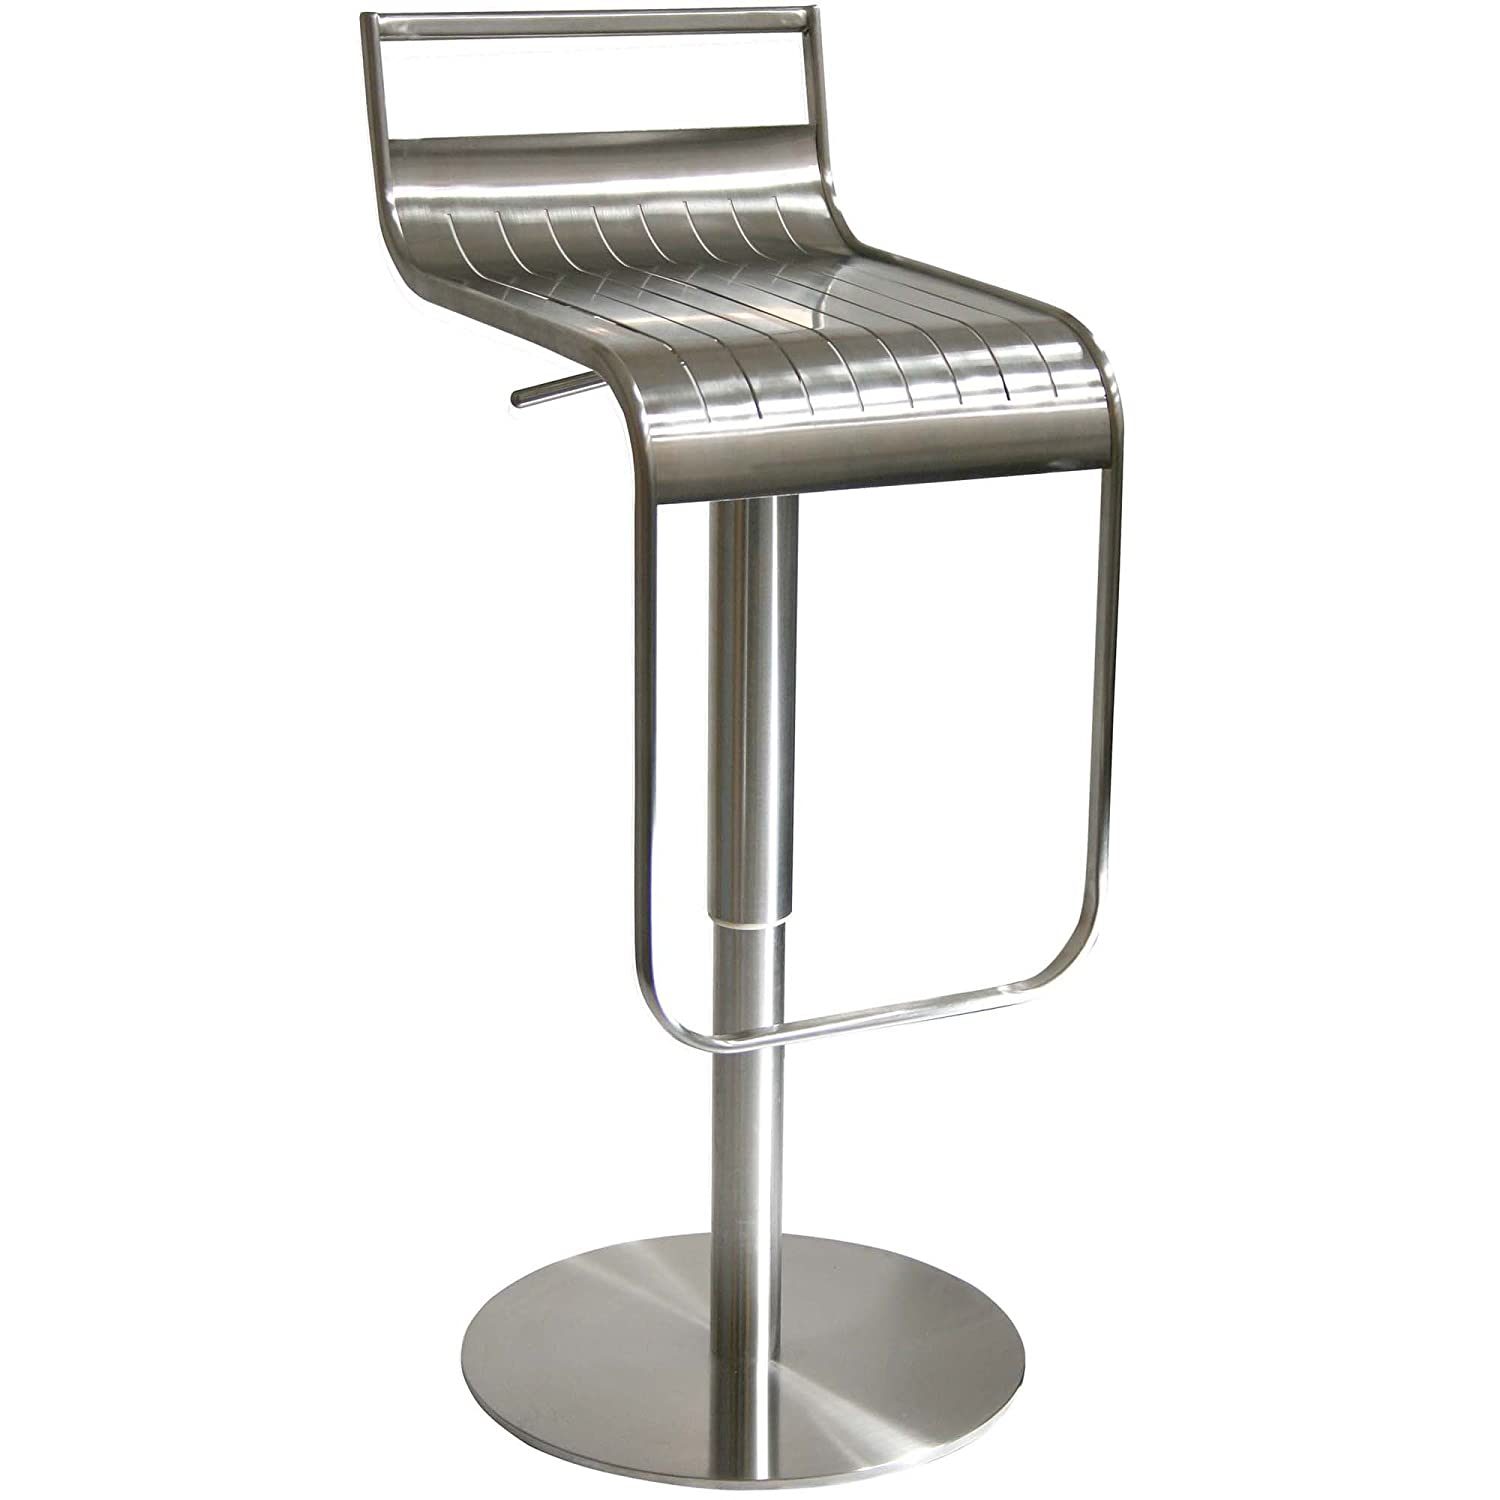 Amazon.com  Amerihome BSSS1 Stainless Steel Bar Stool  Barstool Stainless Steel  Garden u0026 Outdoor  sc 1 st  Amazon.com & Amazon.com : Amerihome BSSS1 Stainless Steel Bar Stool : Barstool ... islam-shia.org